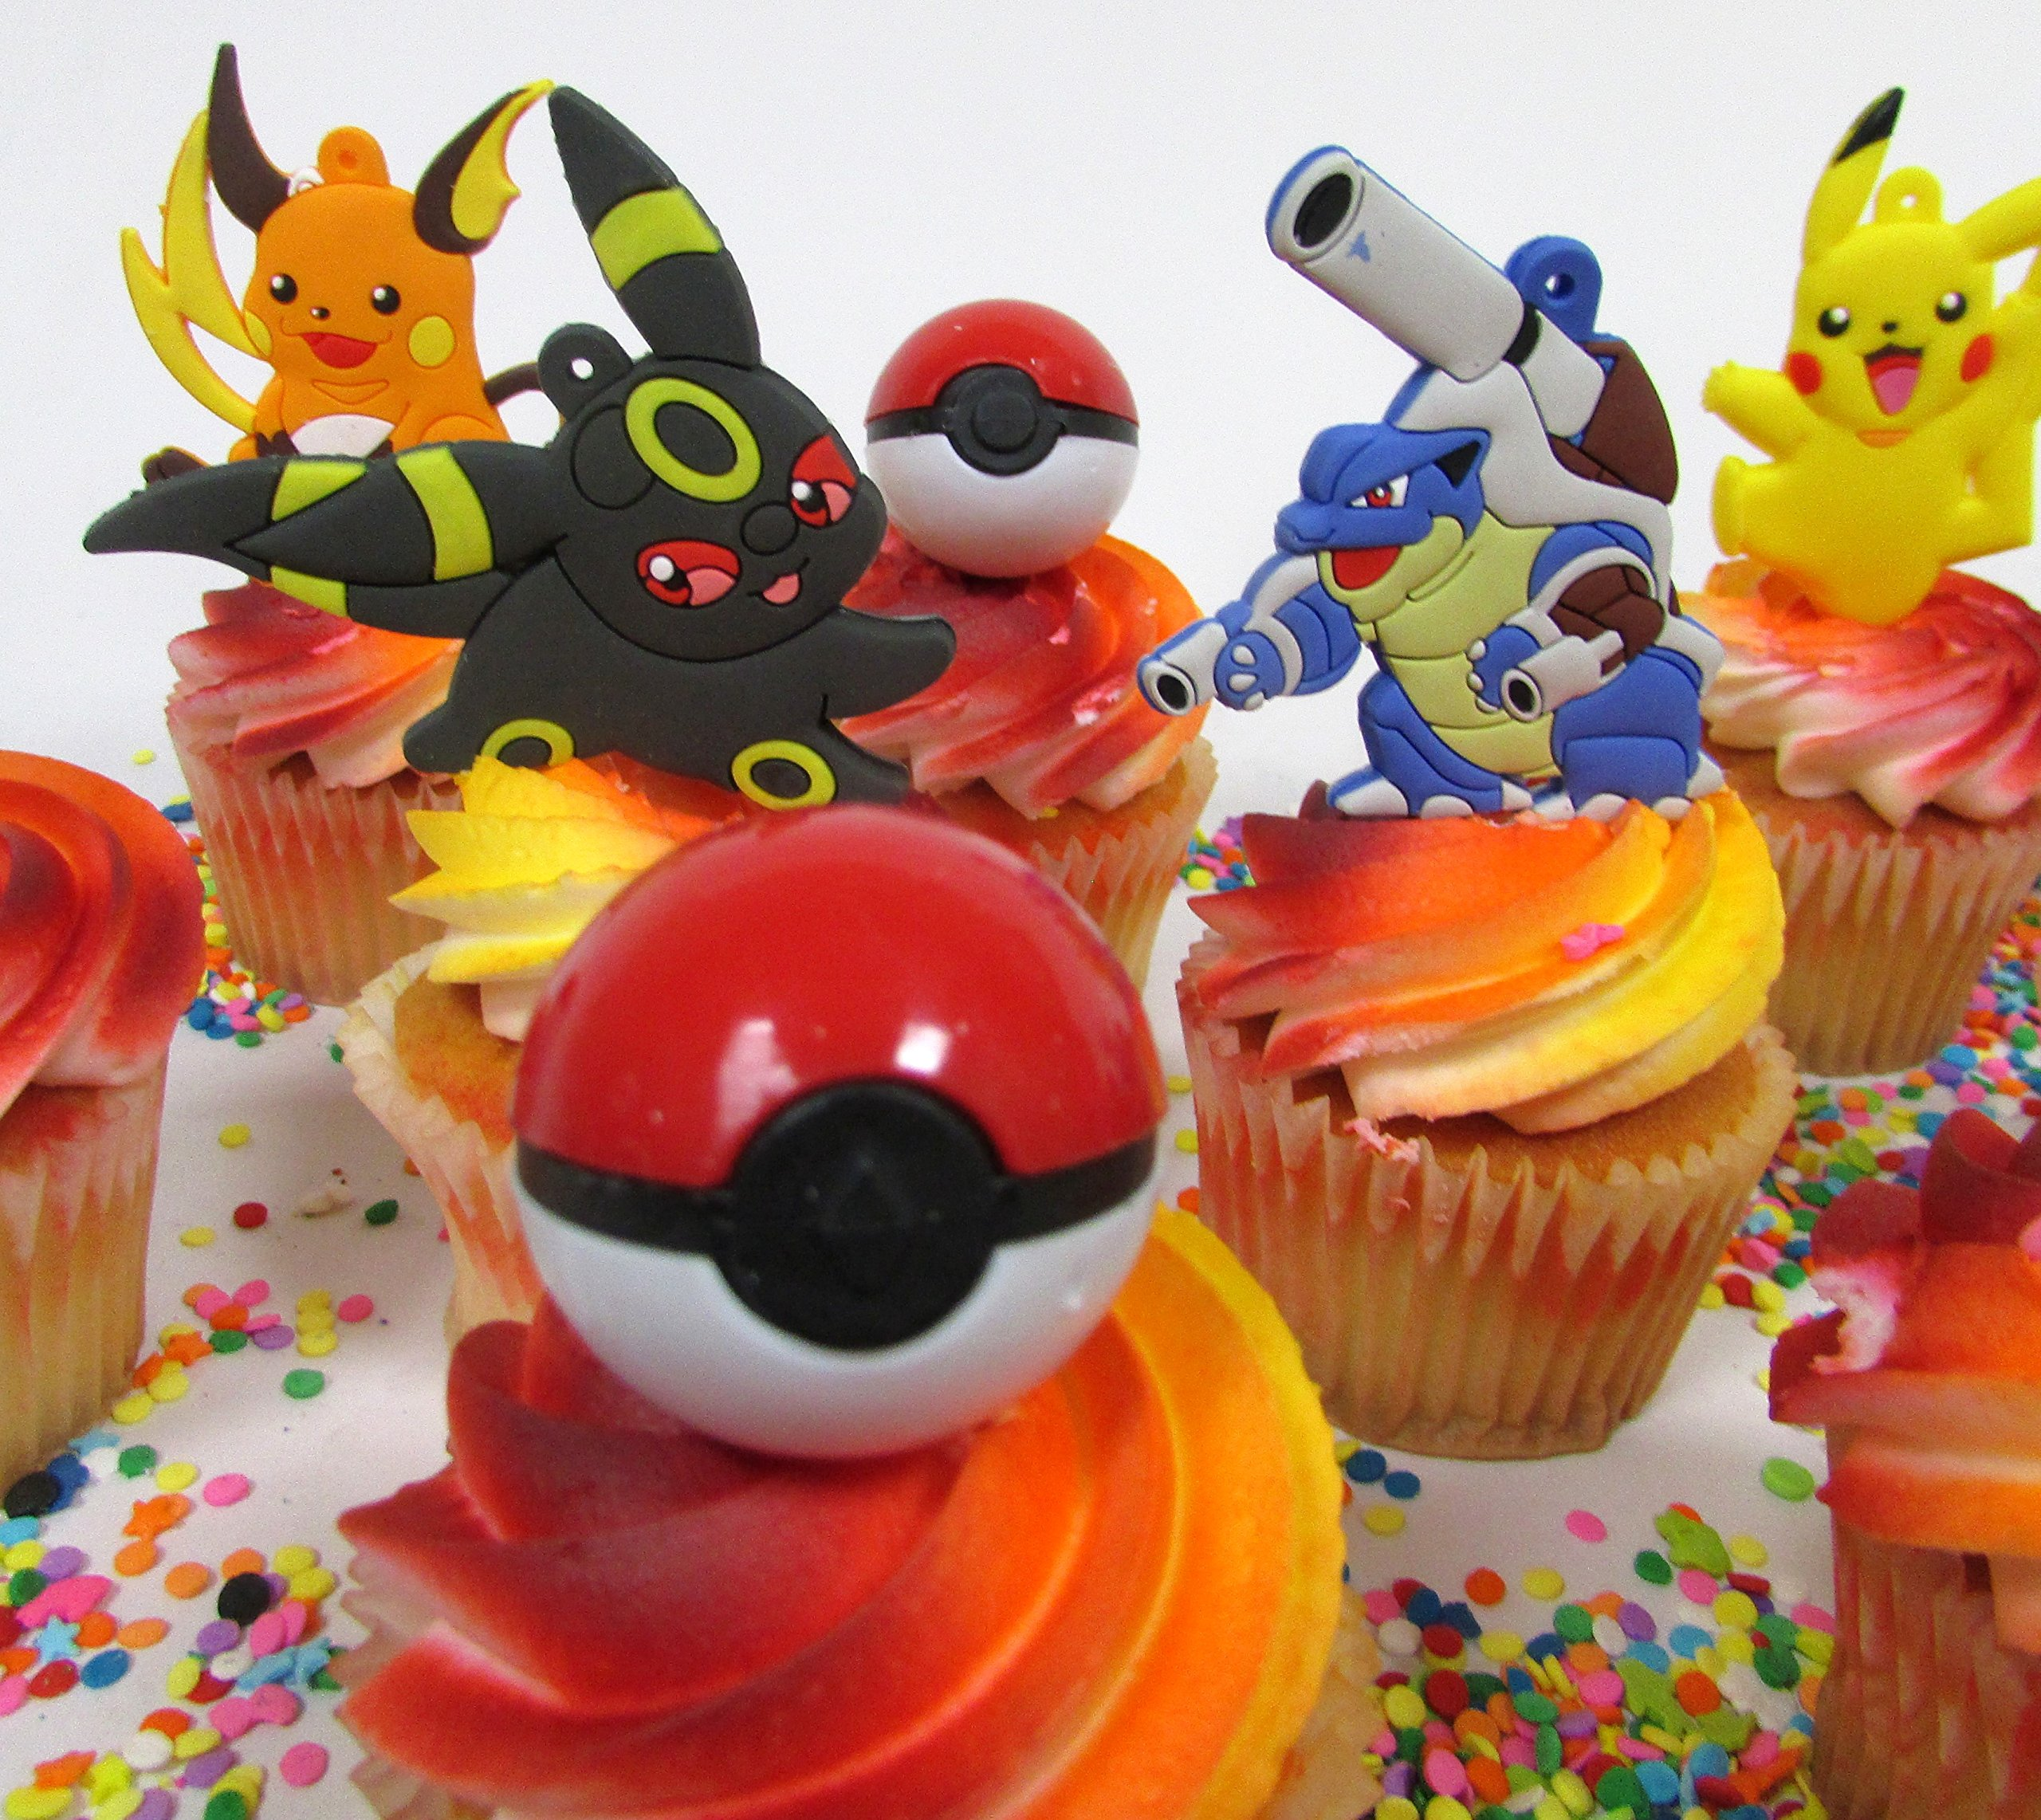 Pikachu and Friends Cupcake Topper Set with 6 Random Pocketmonster Characters and 6 Poke Balls by Cupcake Topper (Image #7)